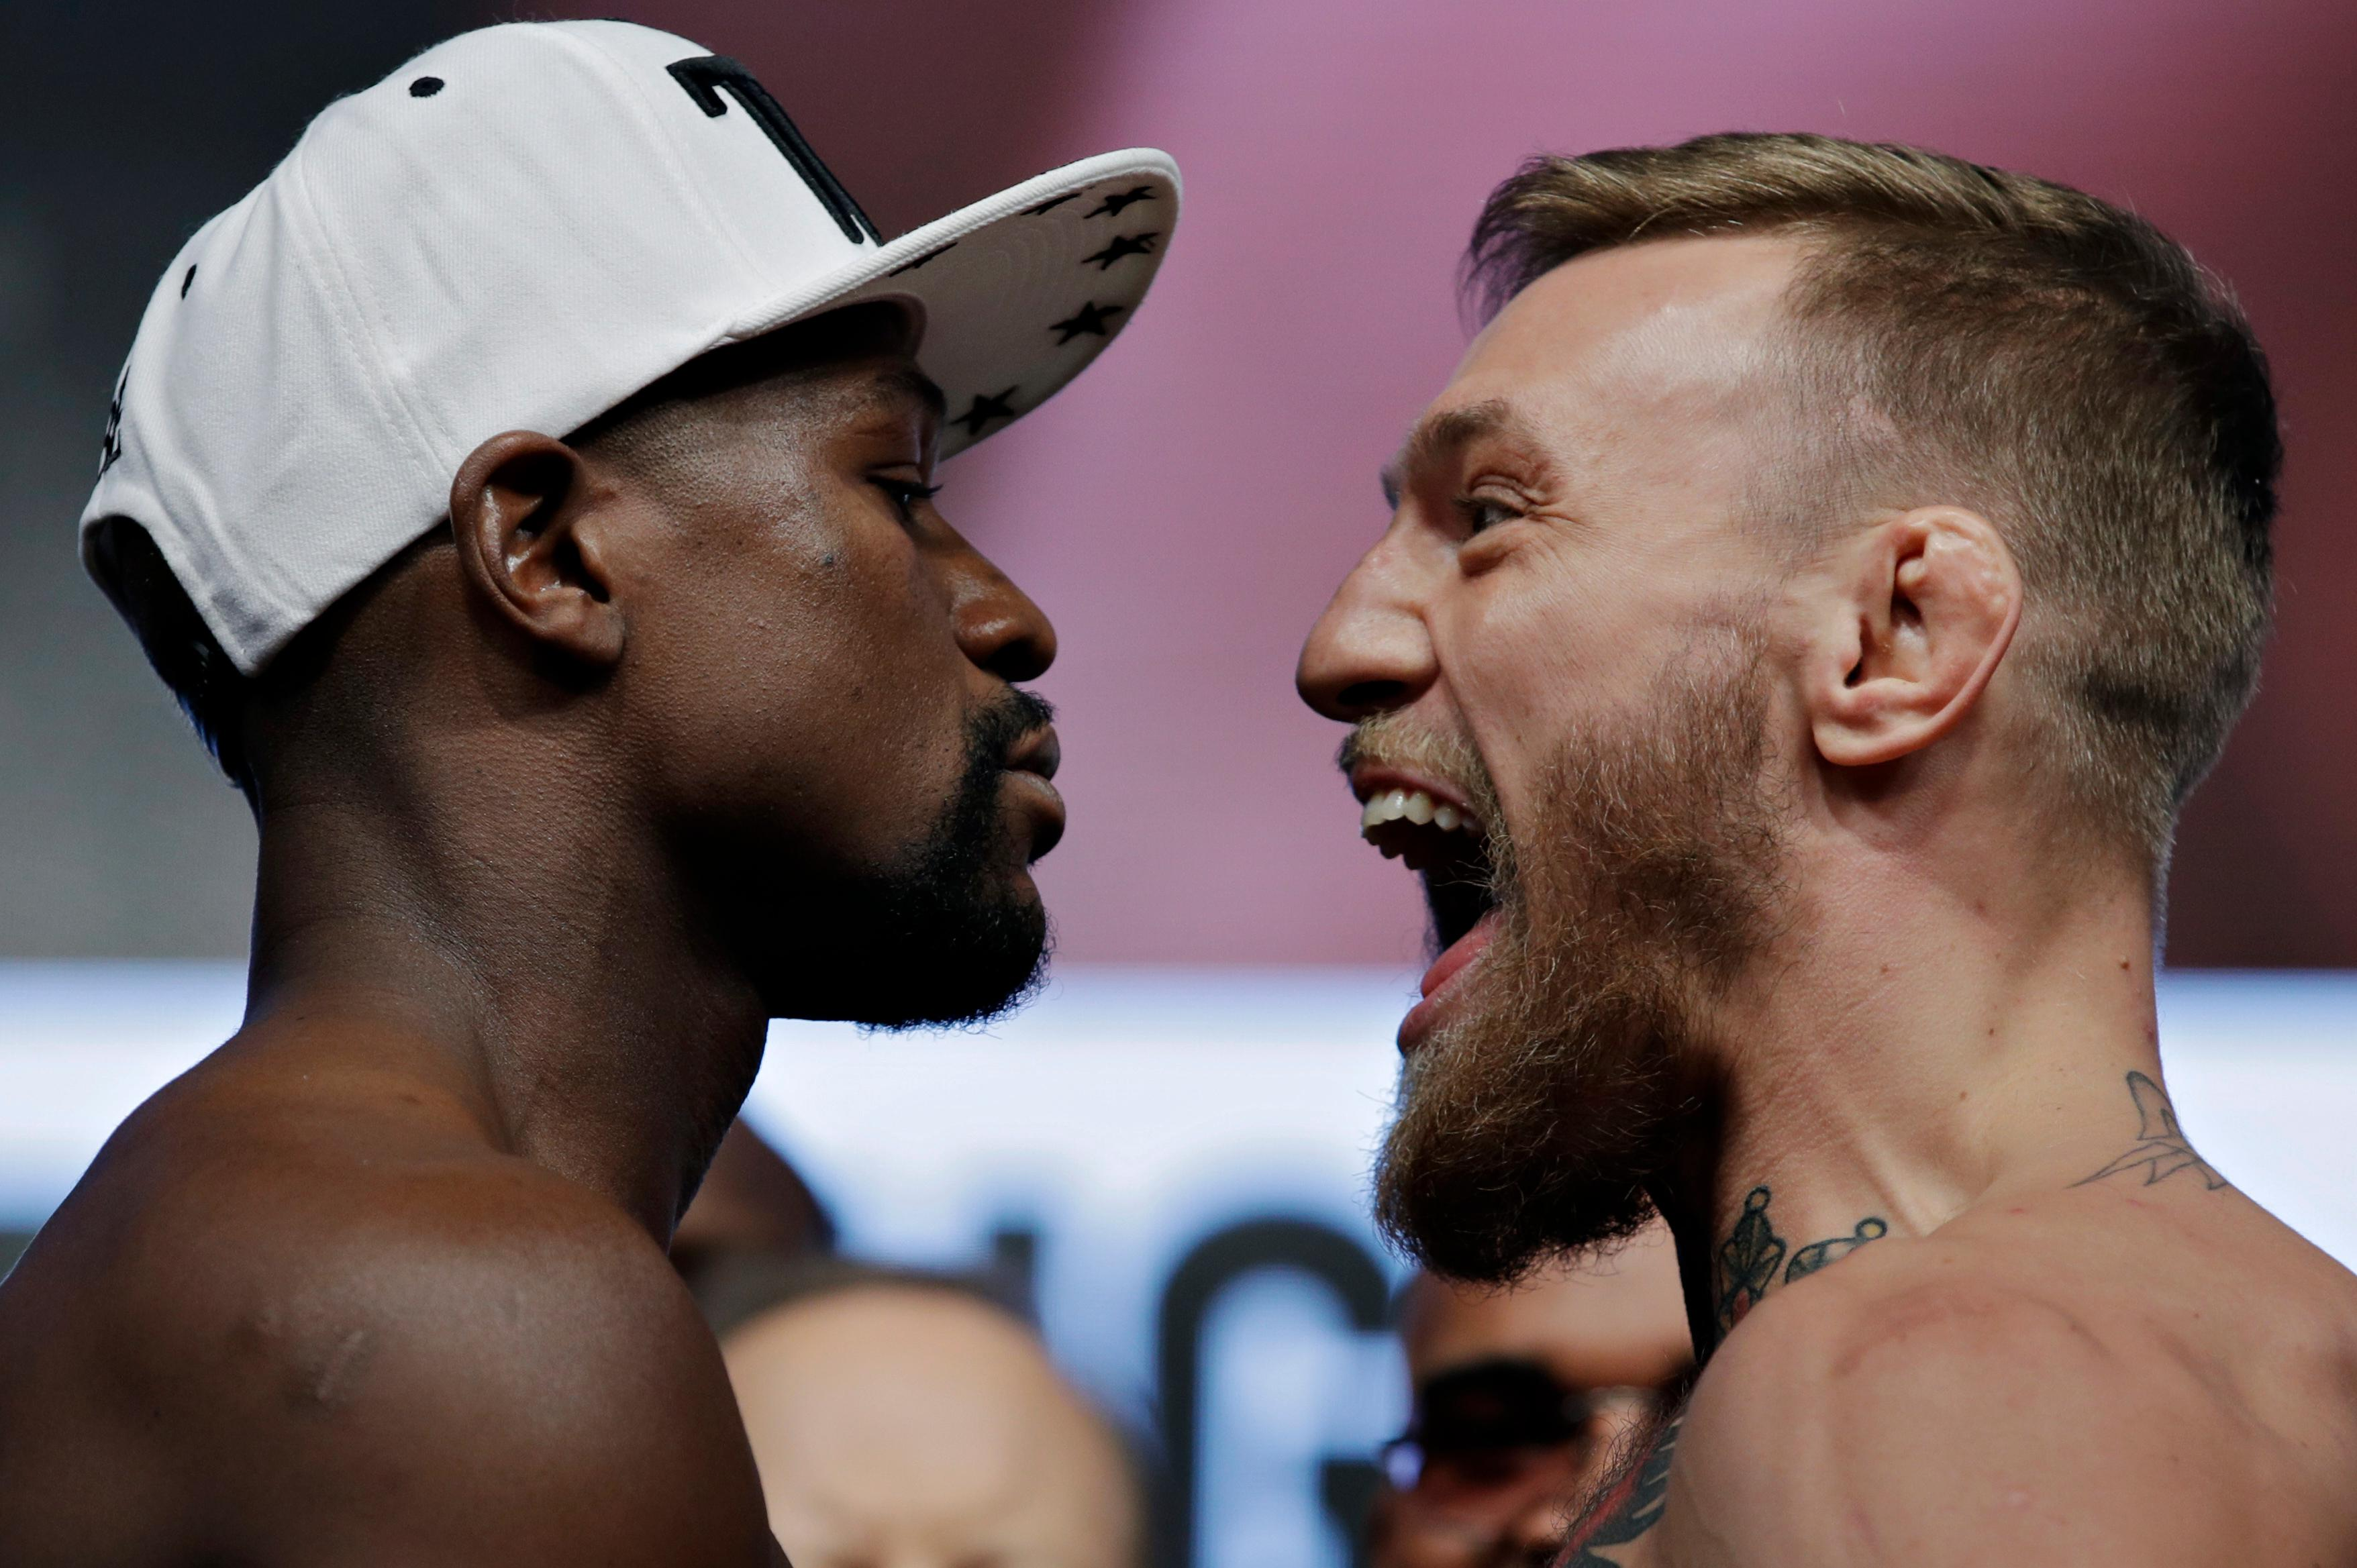 Floyd Mayweather Jr., left, and Conor McGregor face off during weigh-ins Friday, Aug. 25, 2017, in Las Vegas. The two are scheduled to fight in a boxing match Saturday. (AP Photo/John Locher)